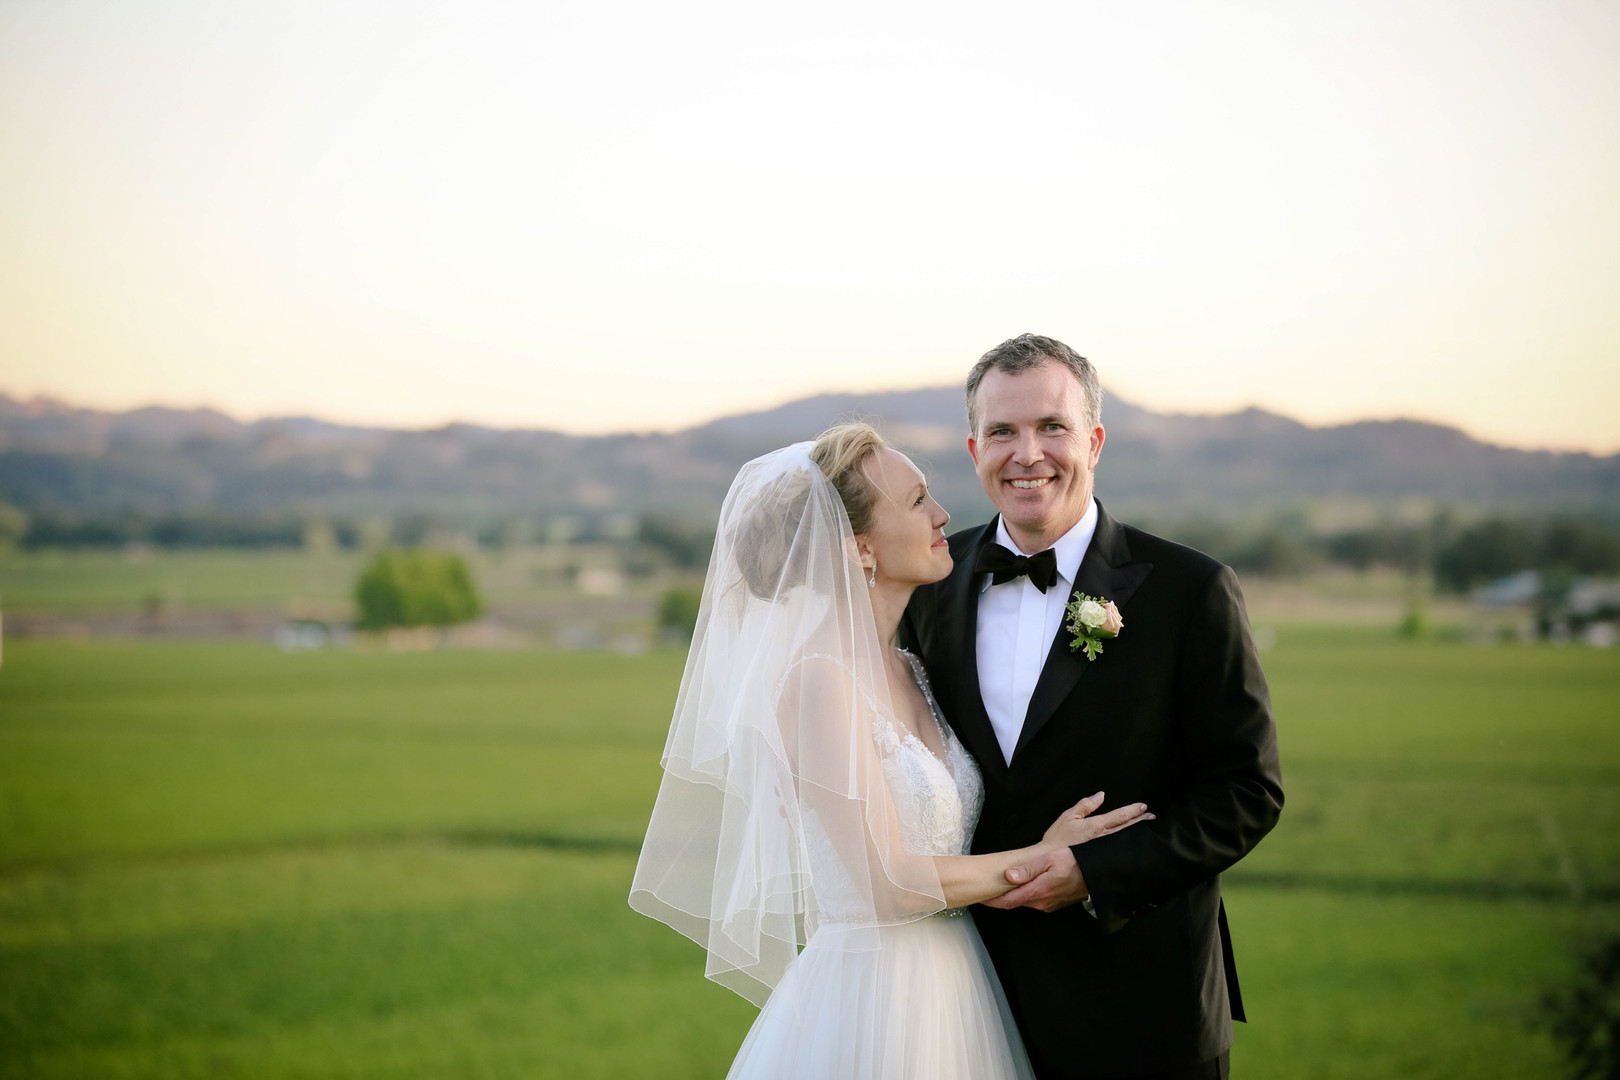 sonomaweddingvenue-271.jpg